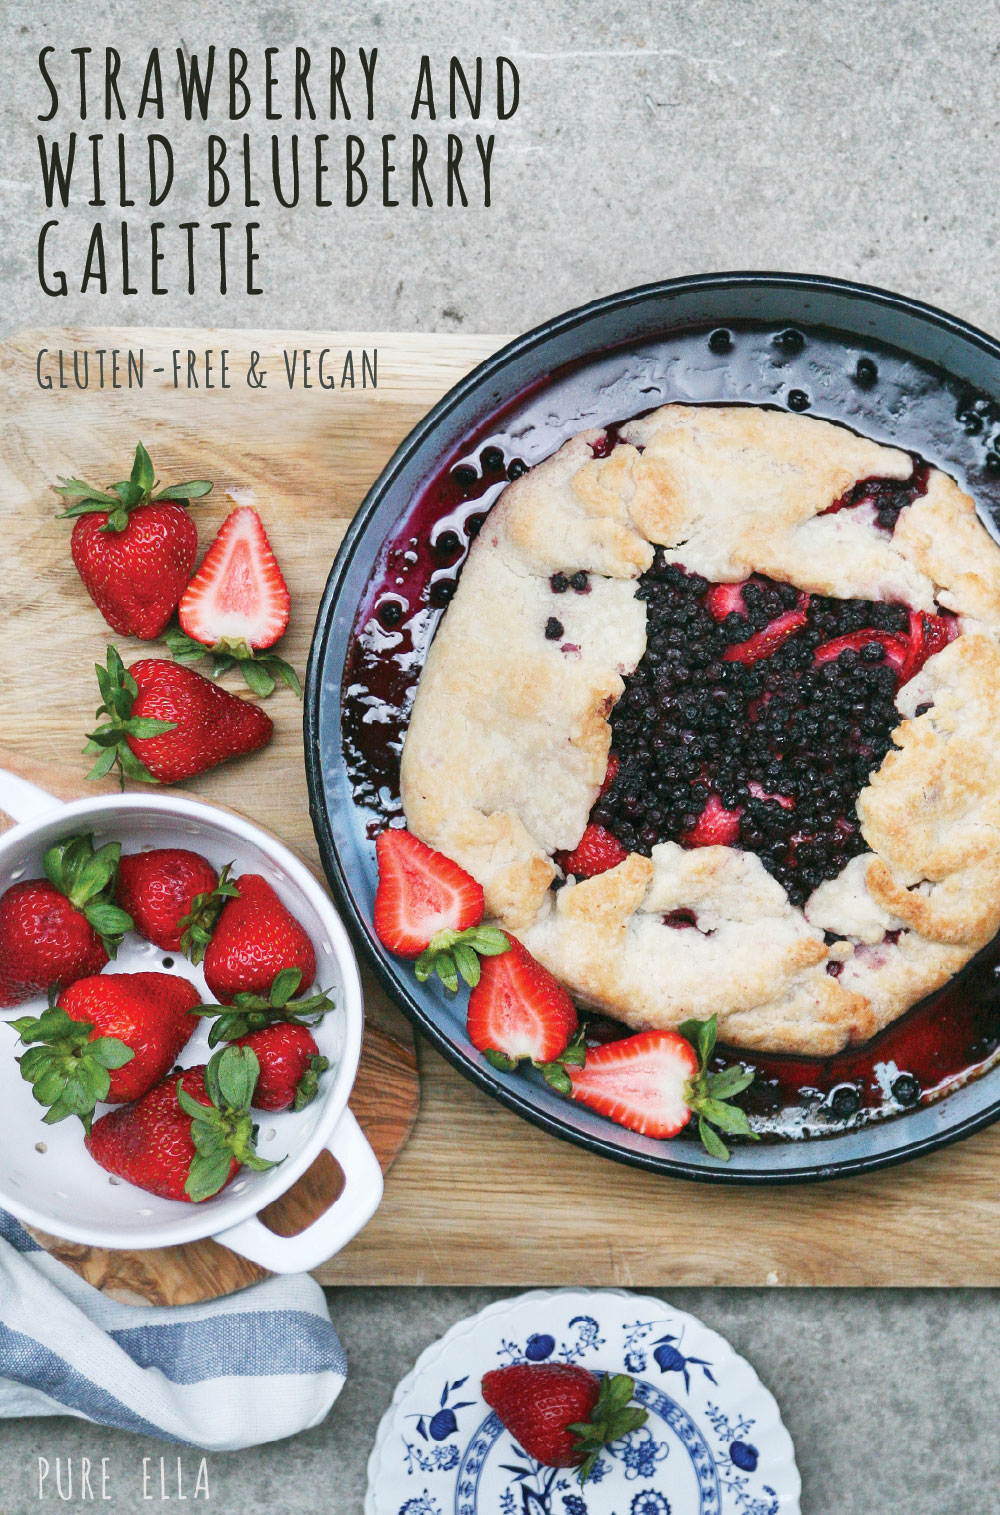 Pure-Ella-gluten-free-vegan-Strawberrry-Wild-Blueberry-Galette